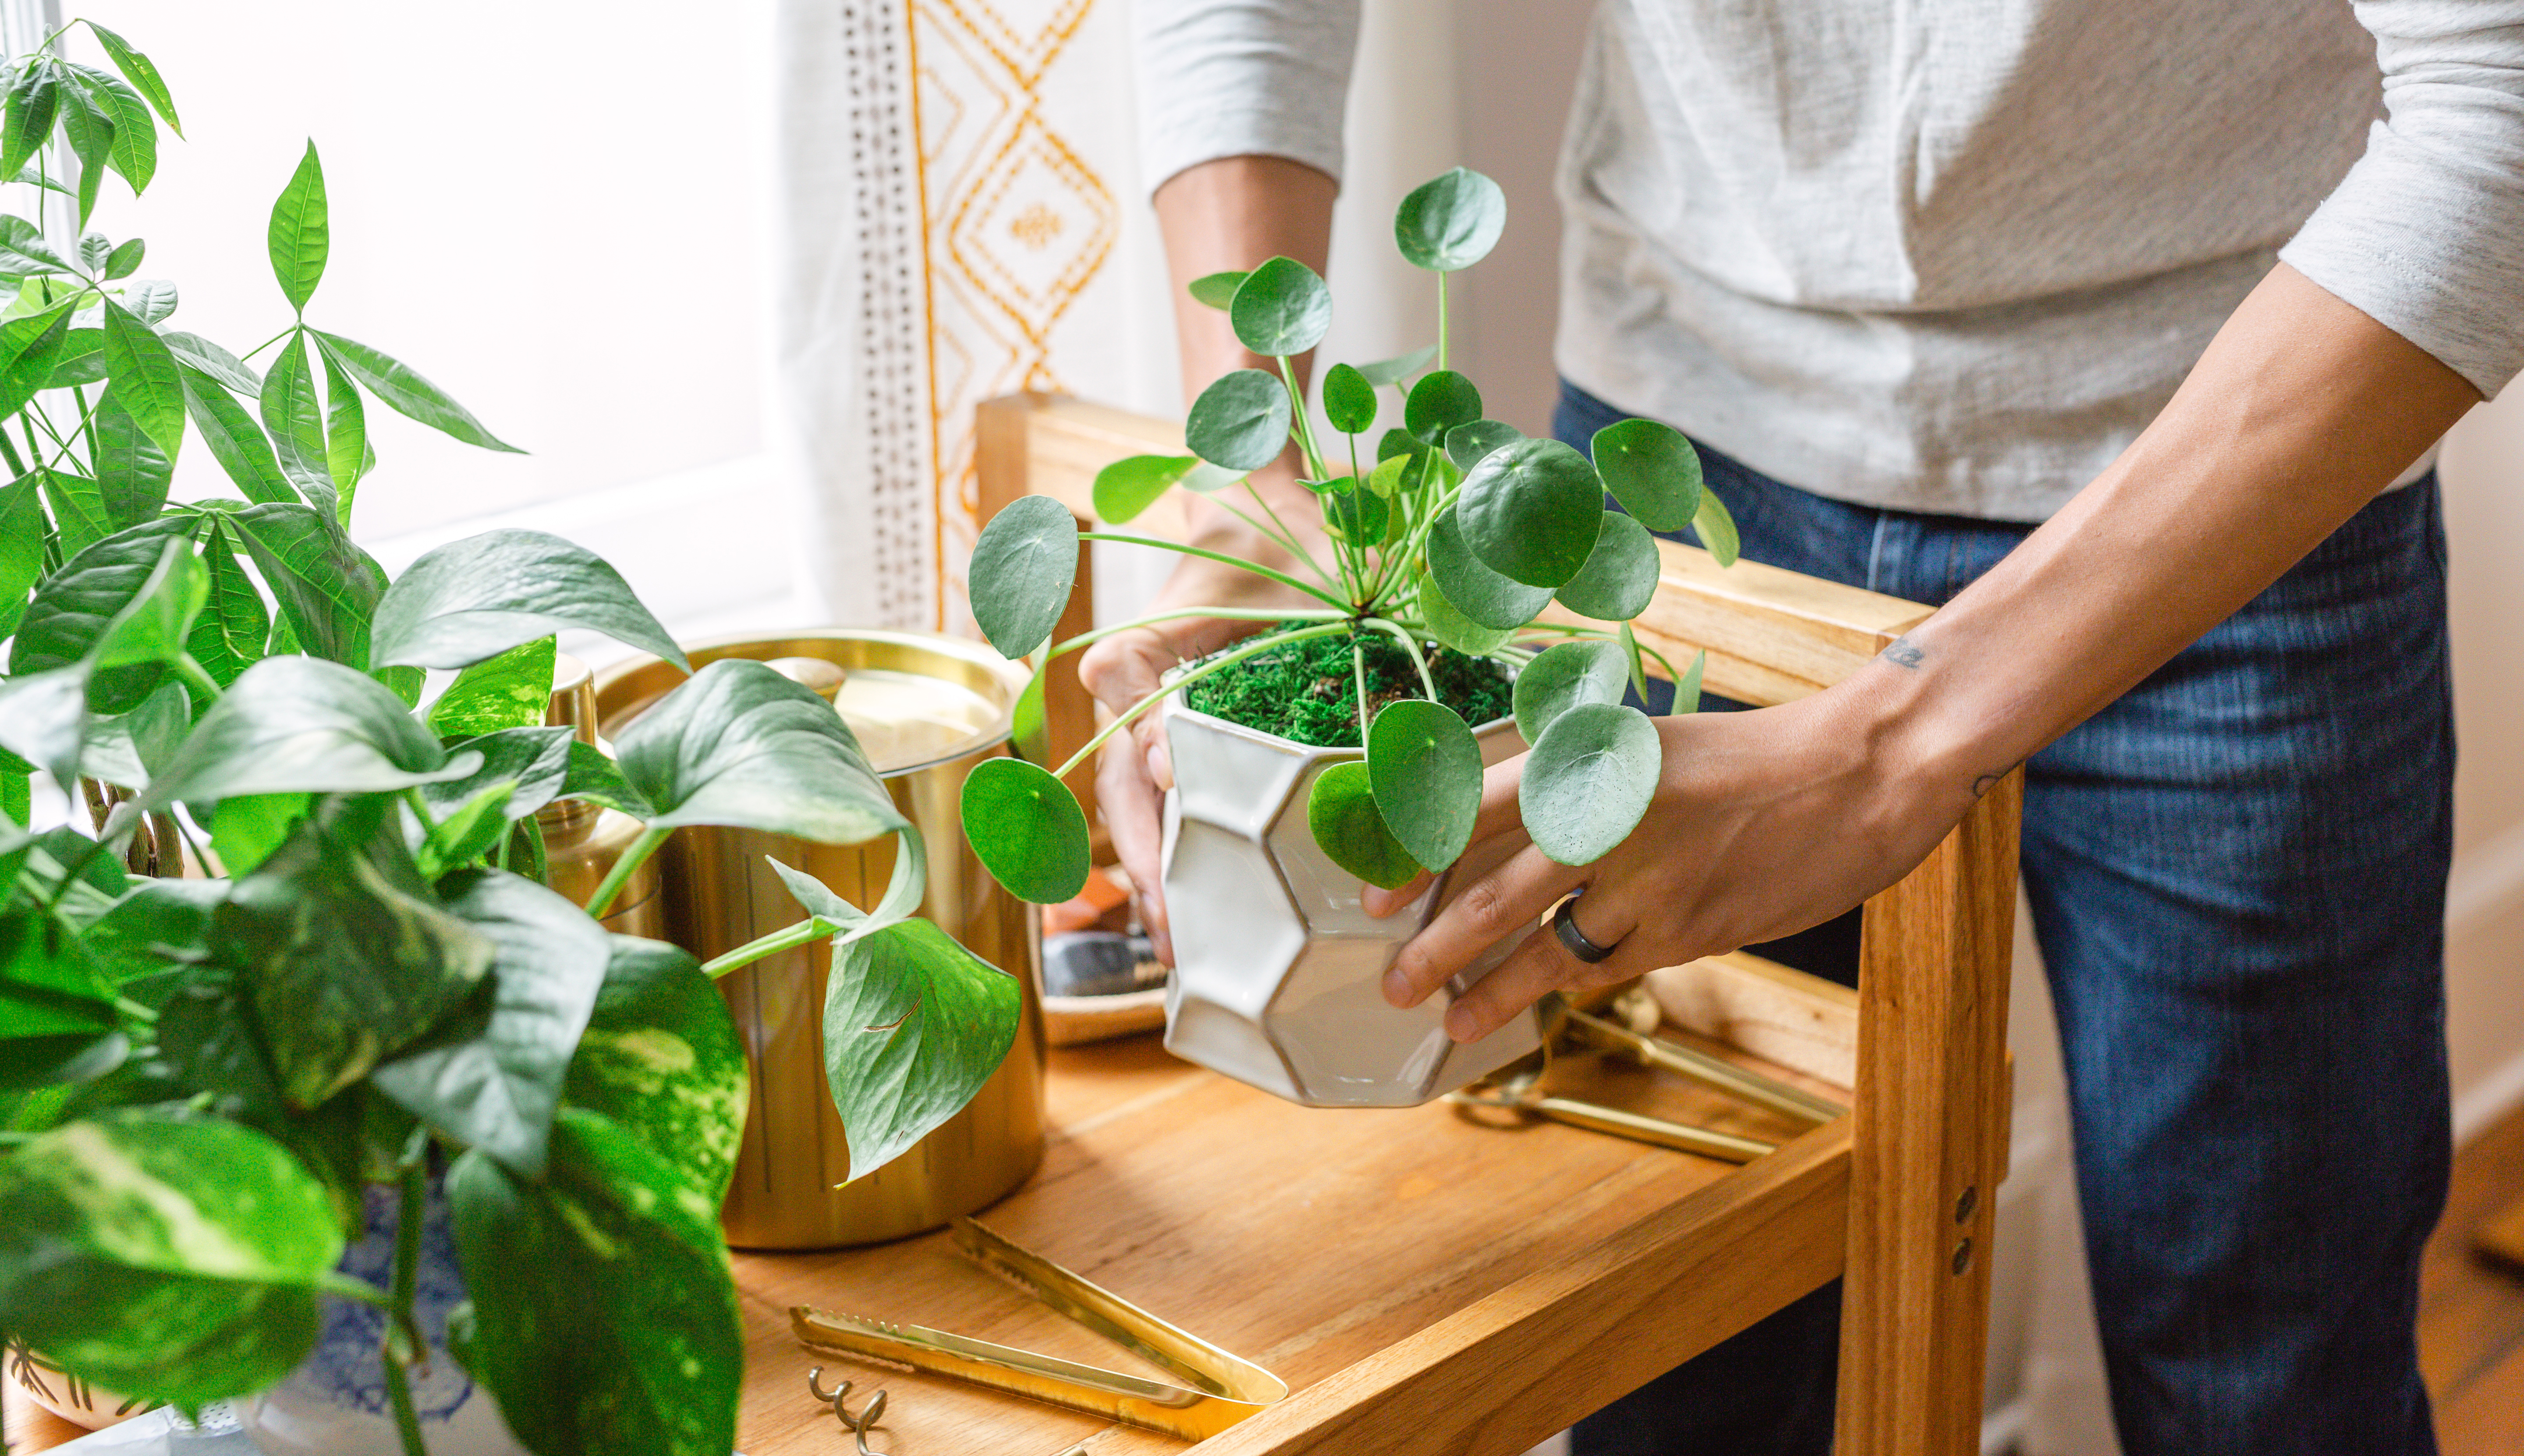 Plants on table including chinese money plant and pothos plant.